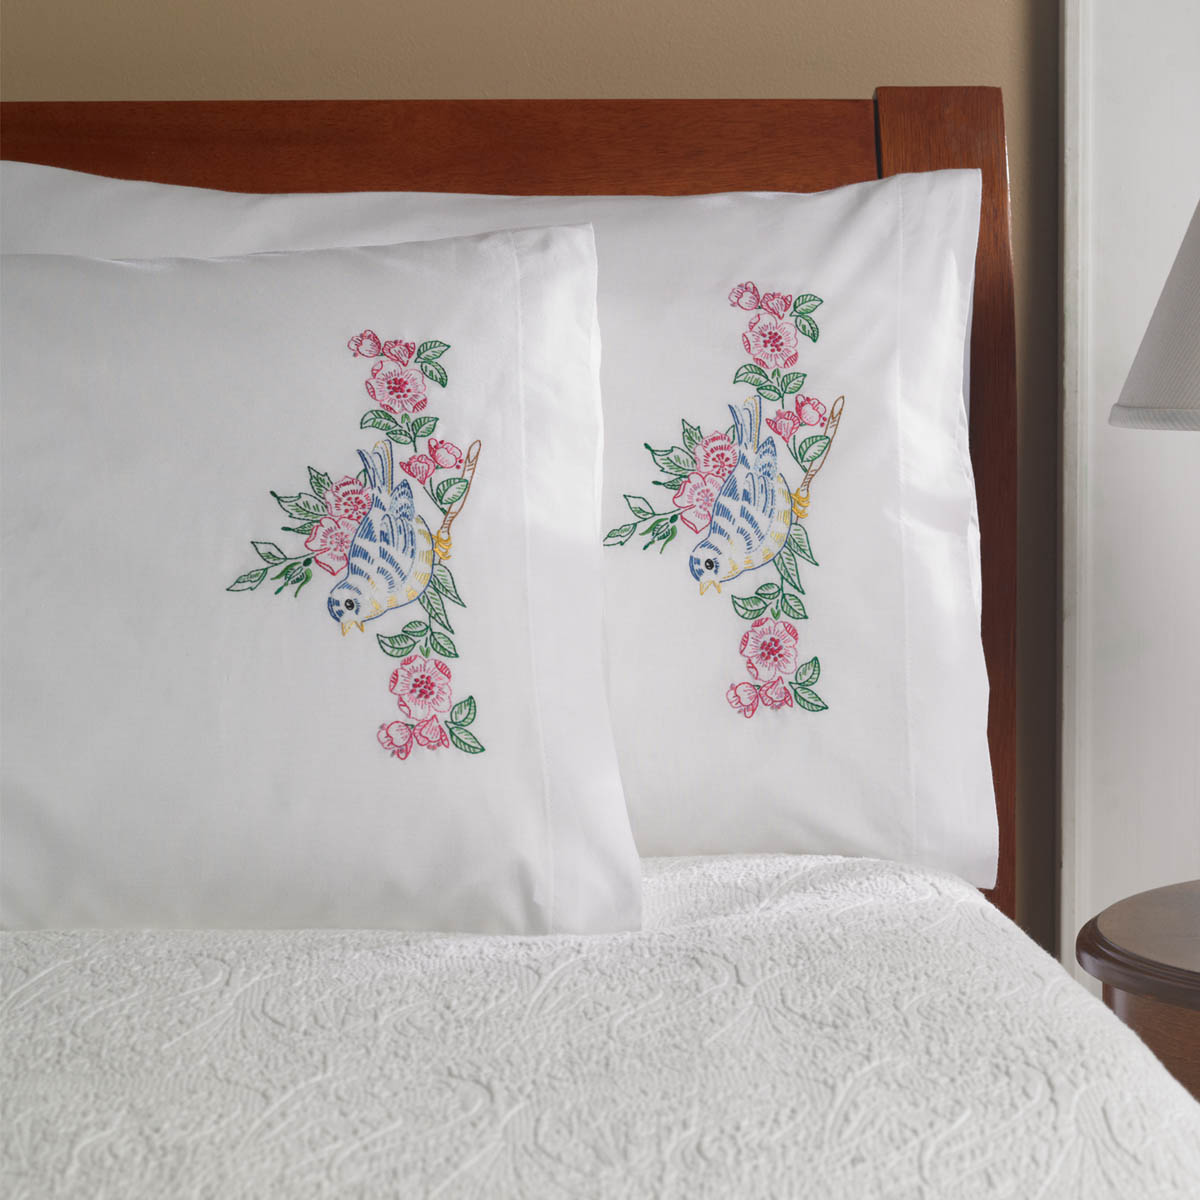 Bucilla ® Stamped Cross Stitch & Embroidery - Pillowcase Pairs - Songbird